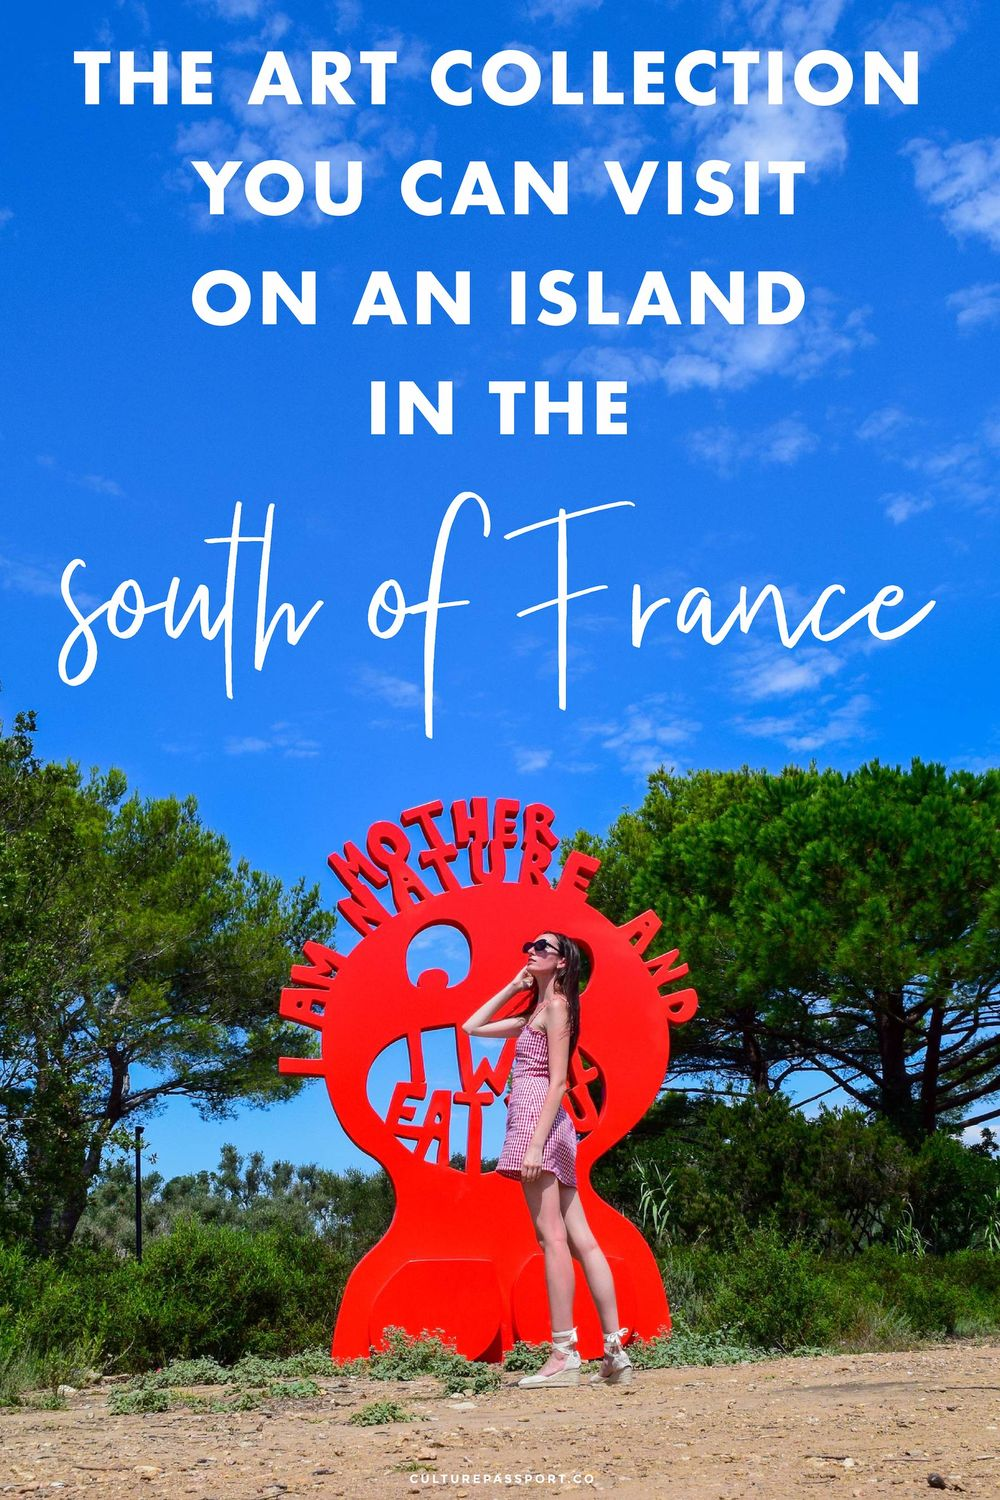 An Art Collection you can visit on an Island in the South Of France